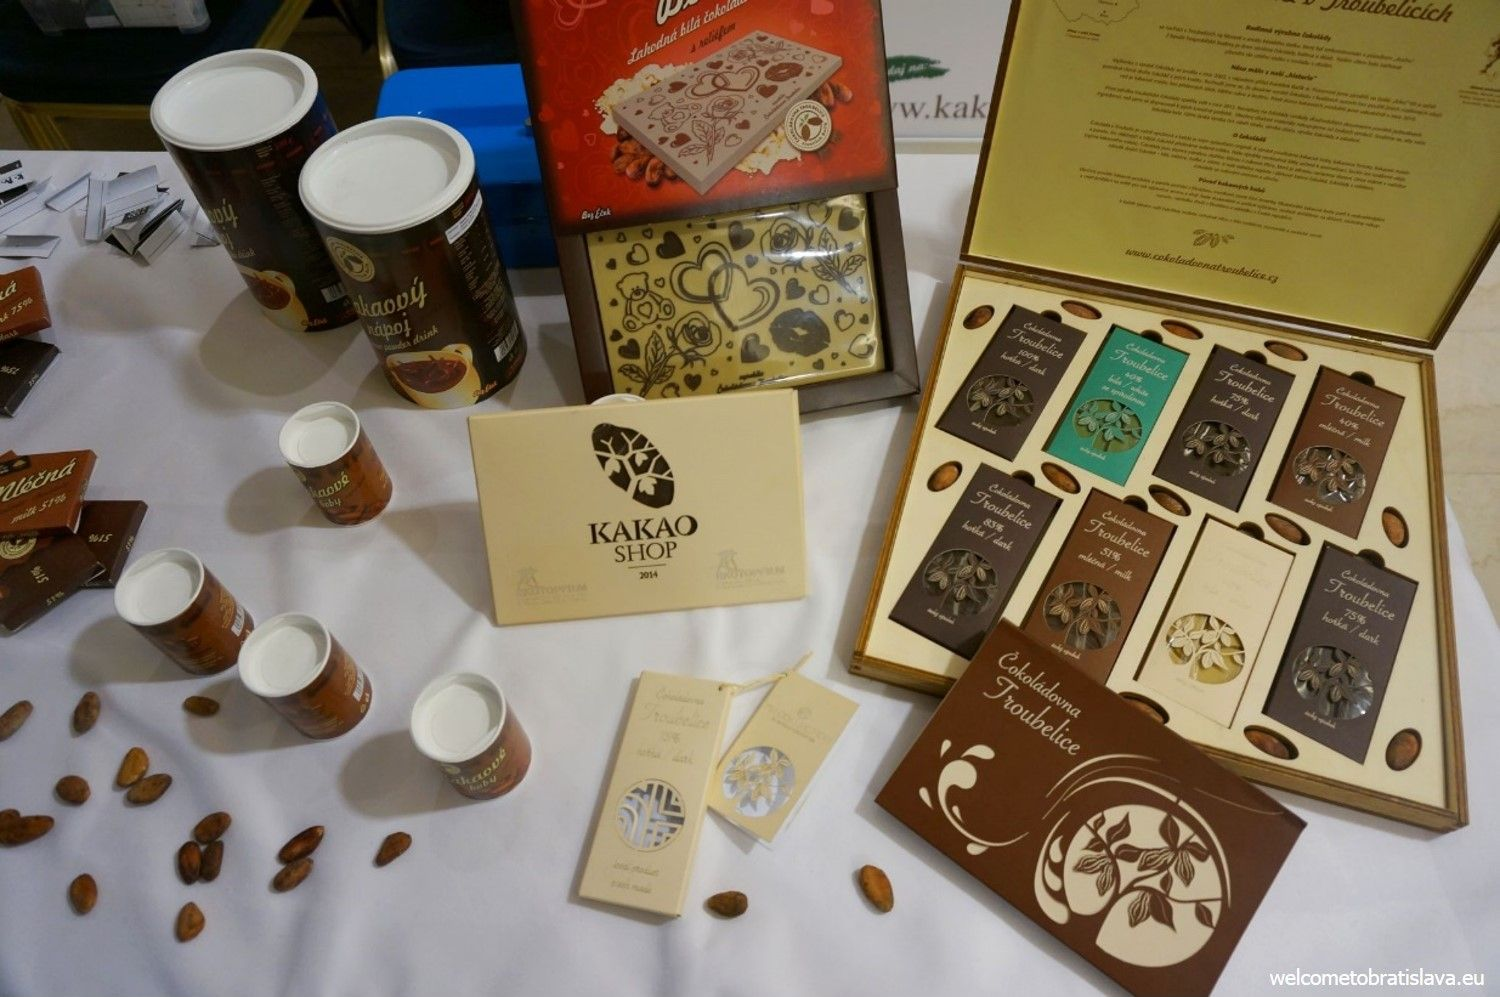 One of the Slovak chocolate producers